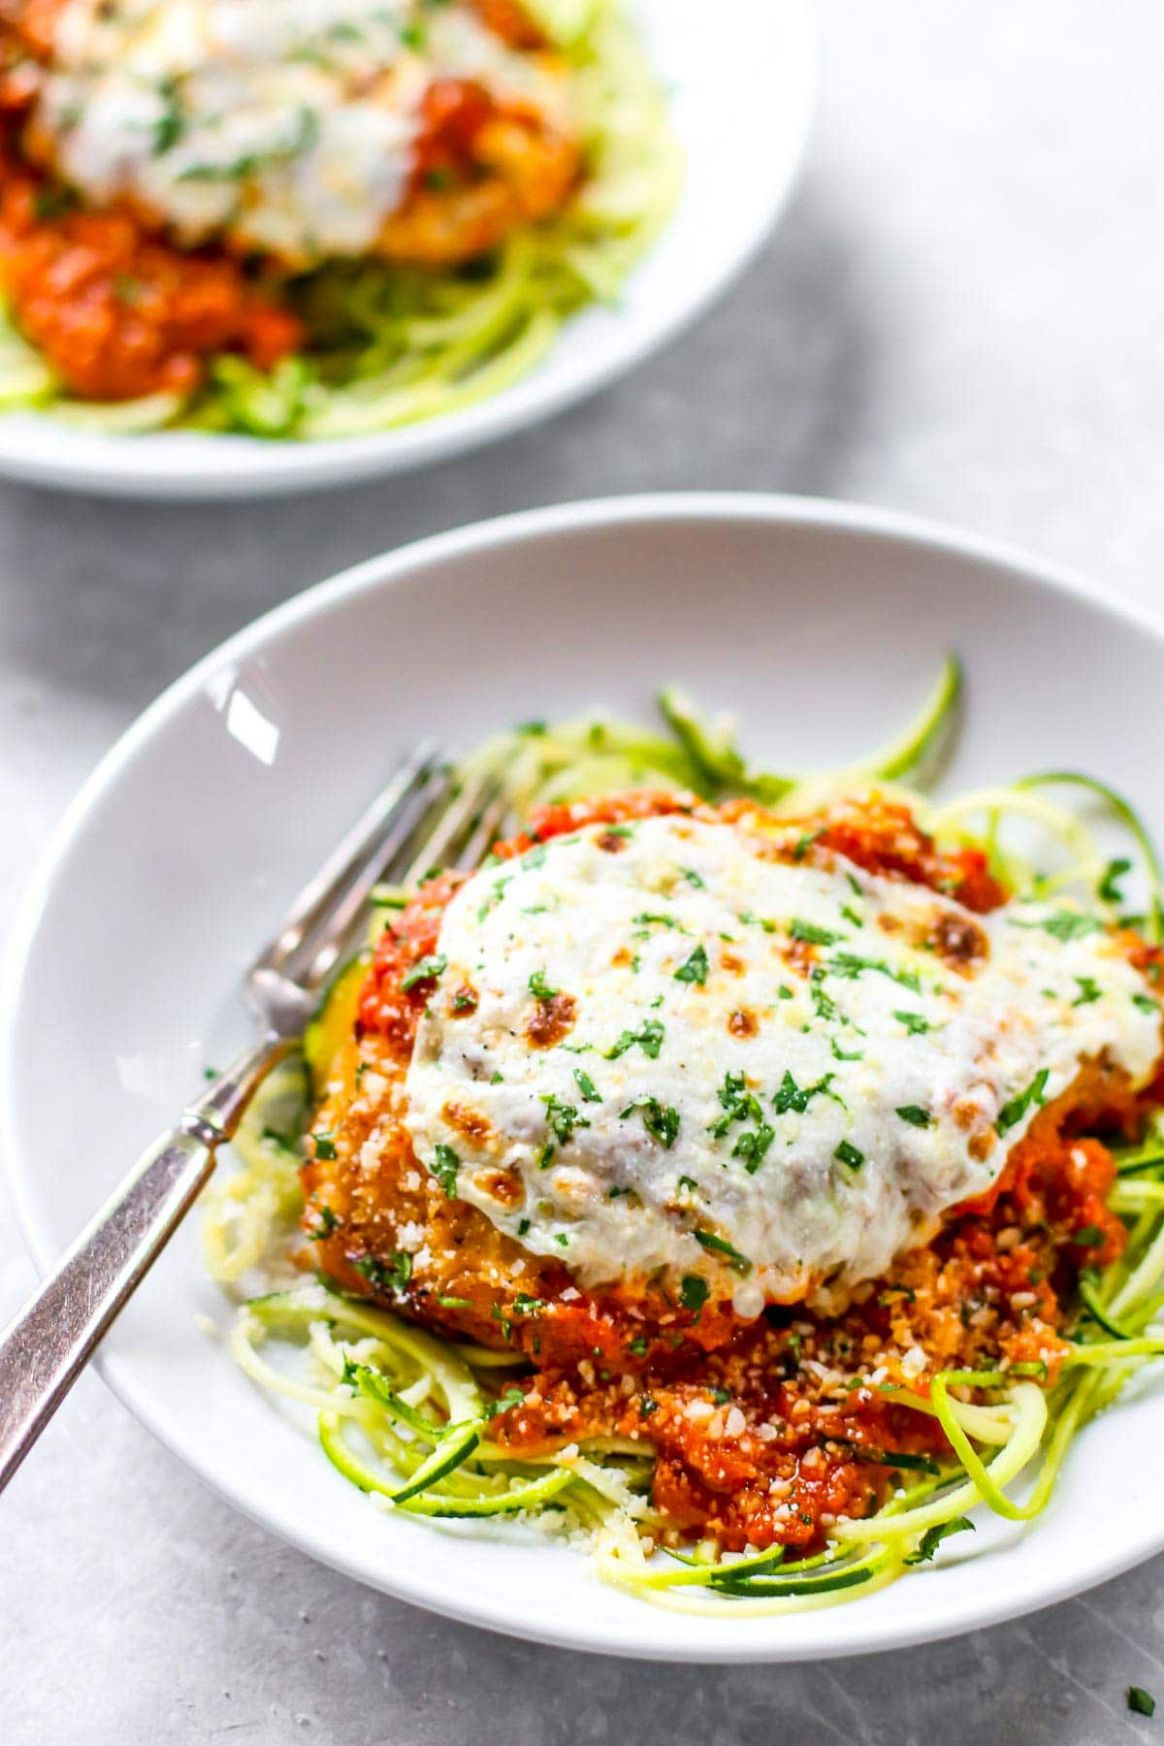 10 Minute Healthy Chicken Parmesan Recipe - Pinch of Yum - Healthy Recipes Zoodles